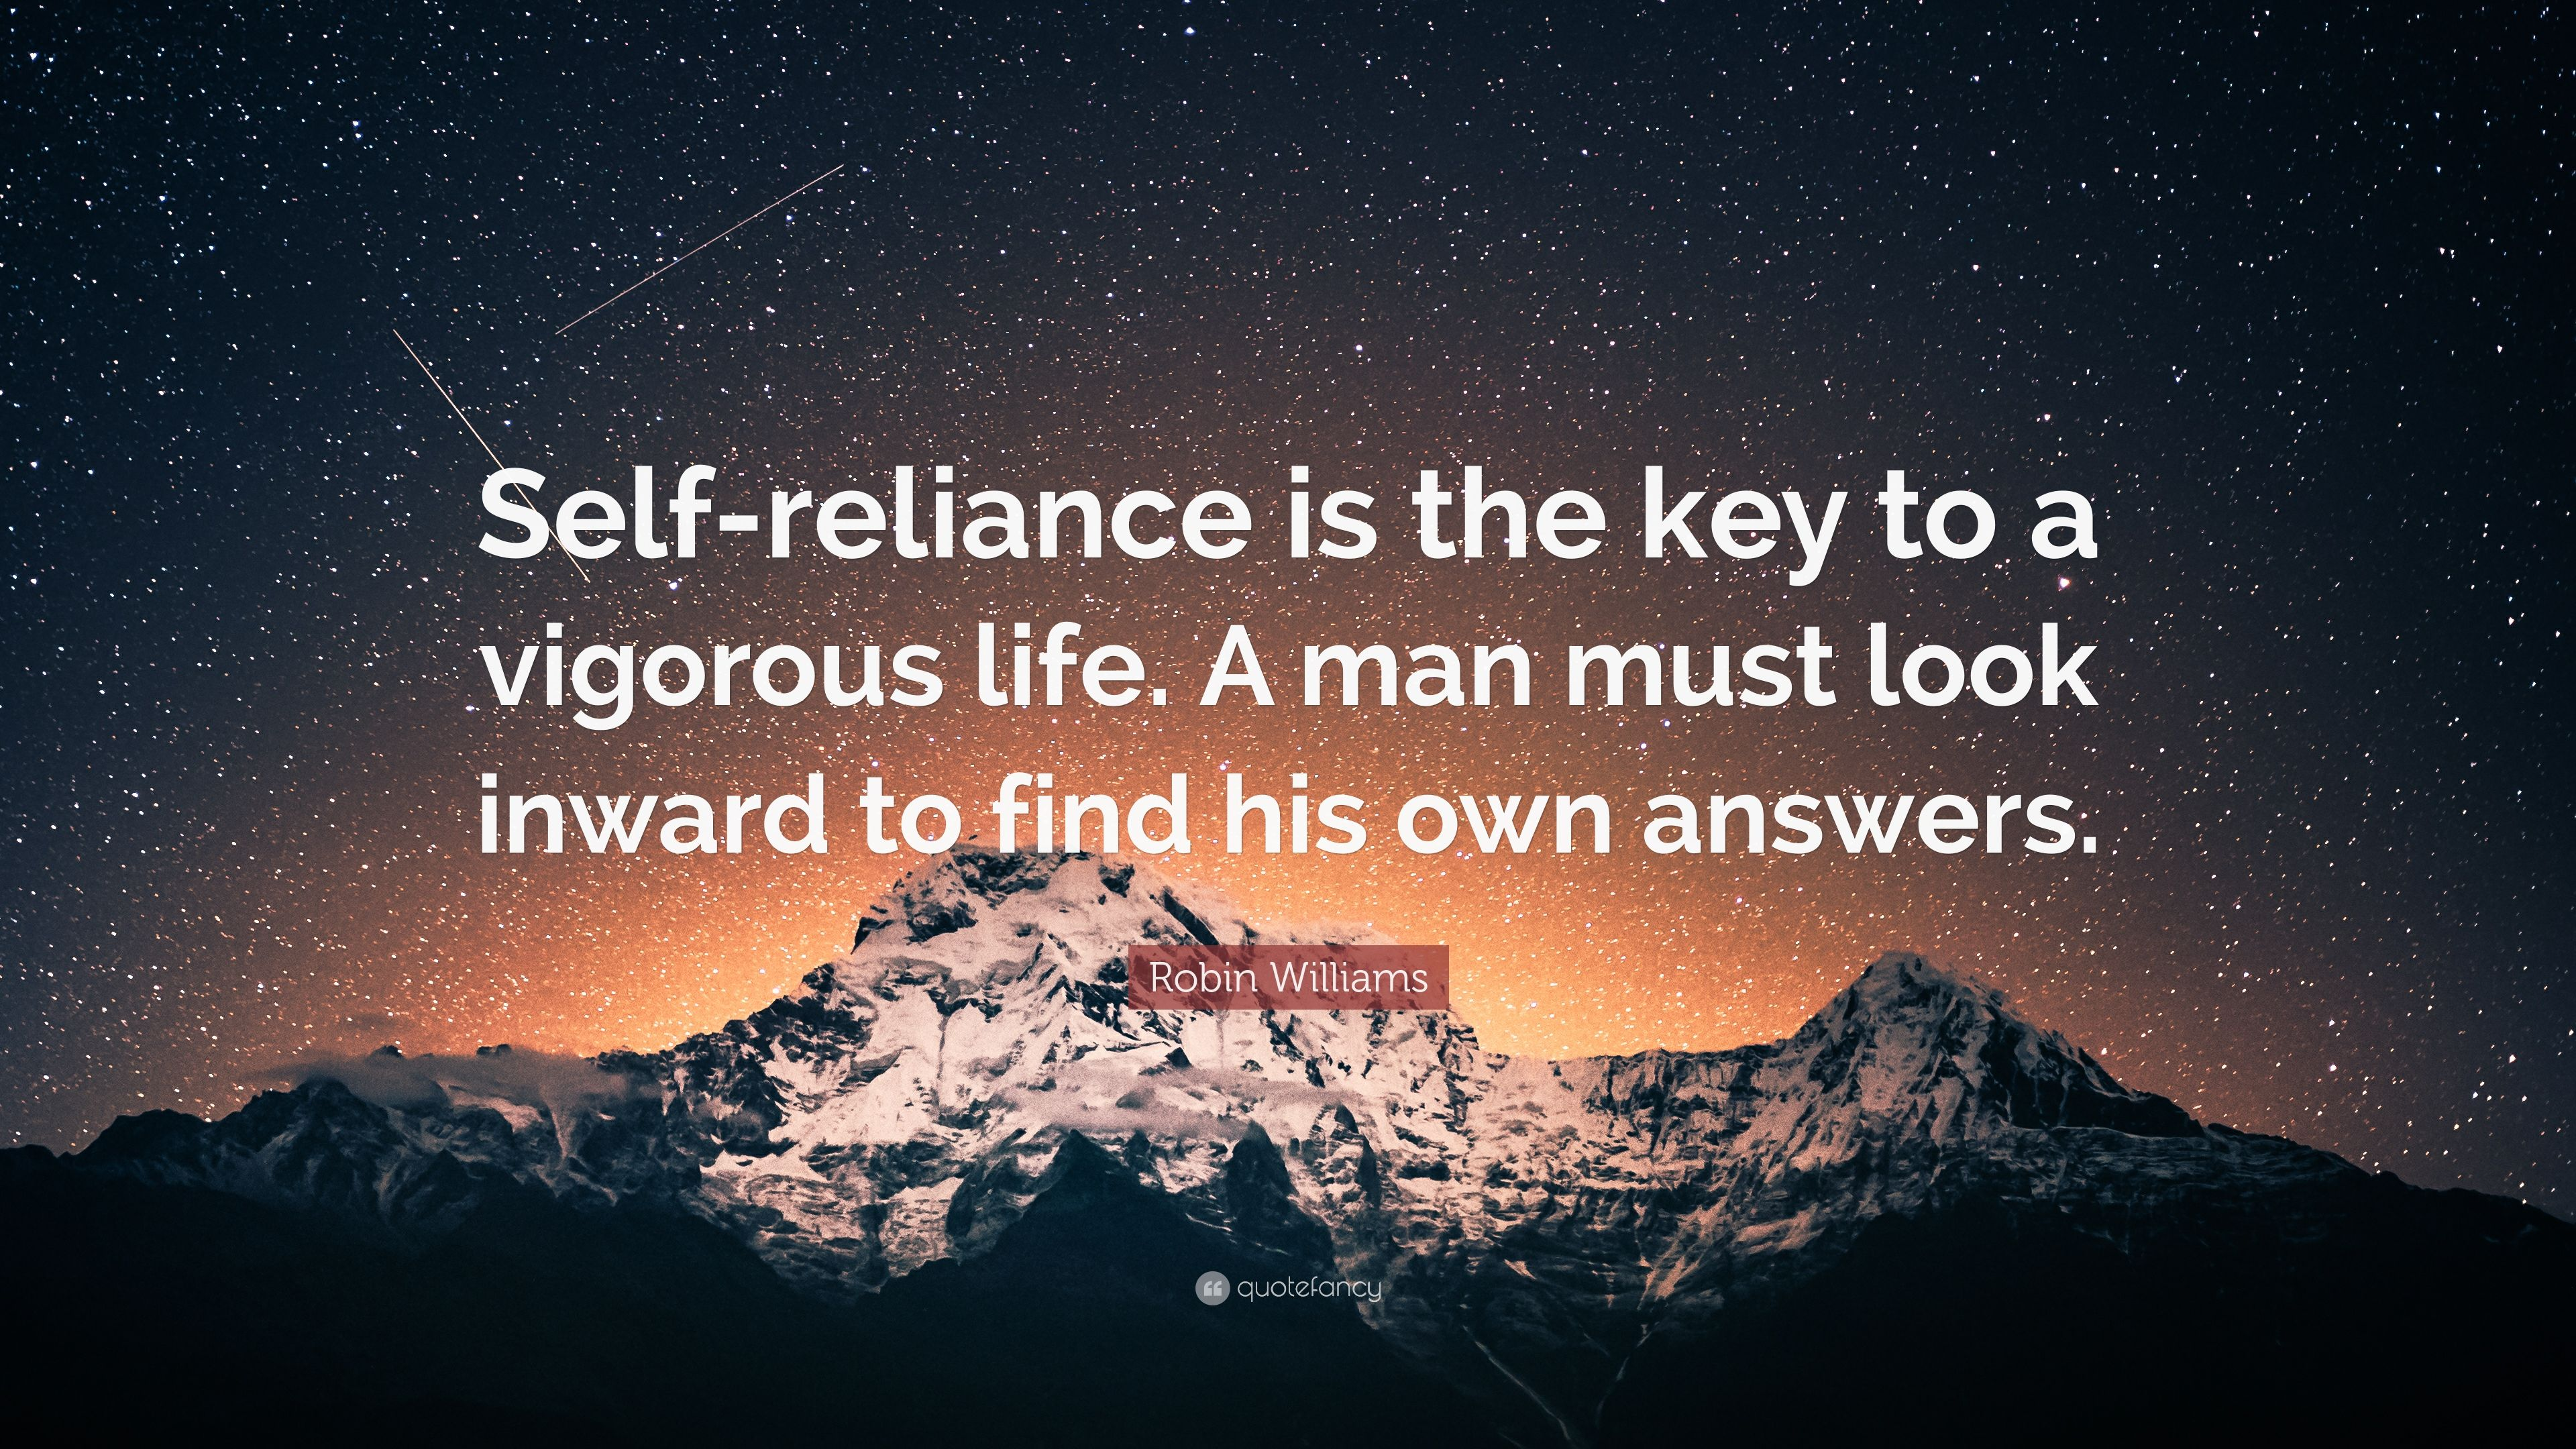 Quotes About Self Reliance Self Reliance Quotes Self Respect Quotes